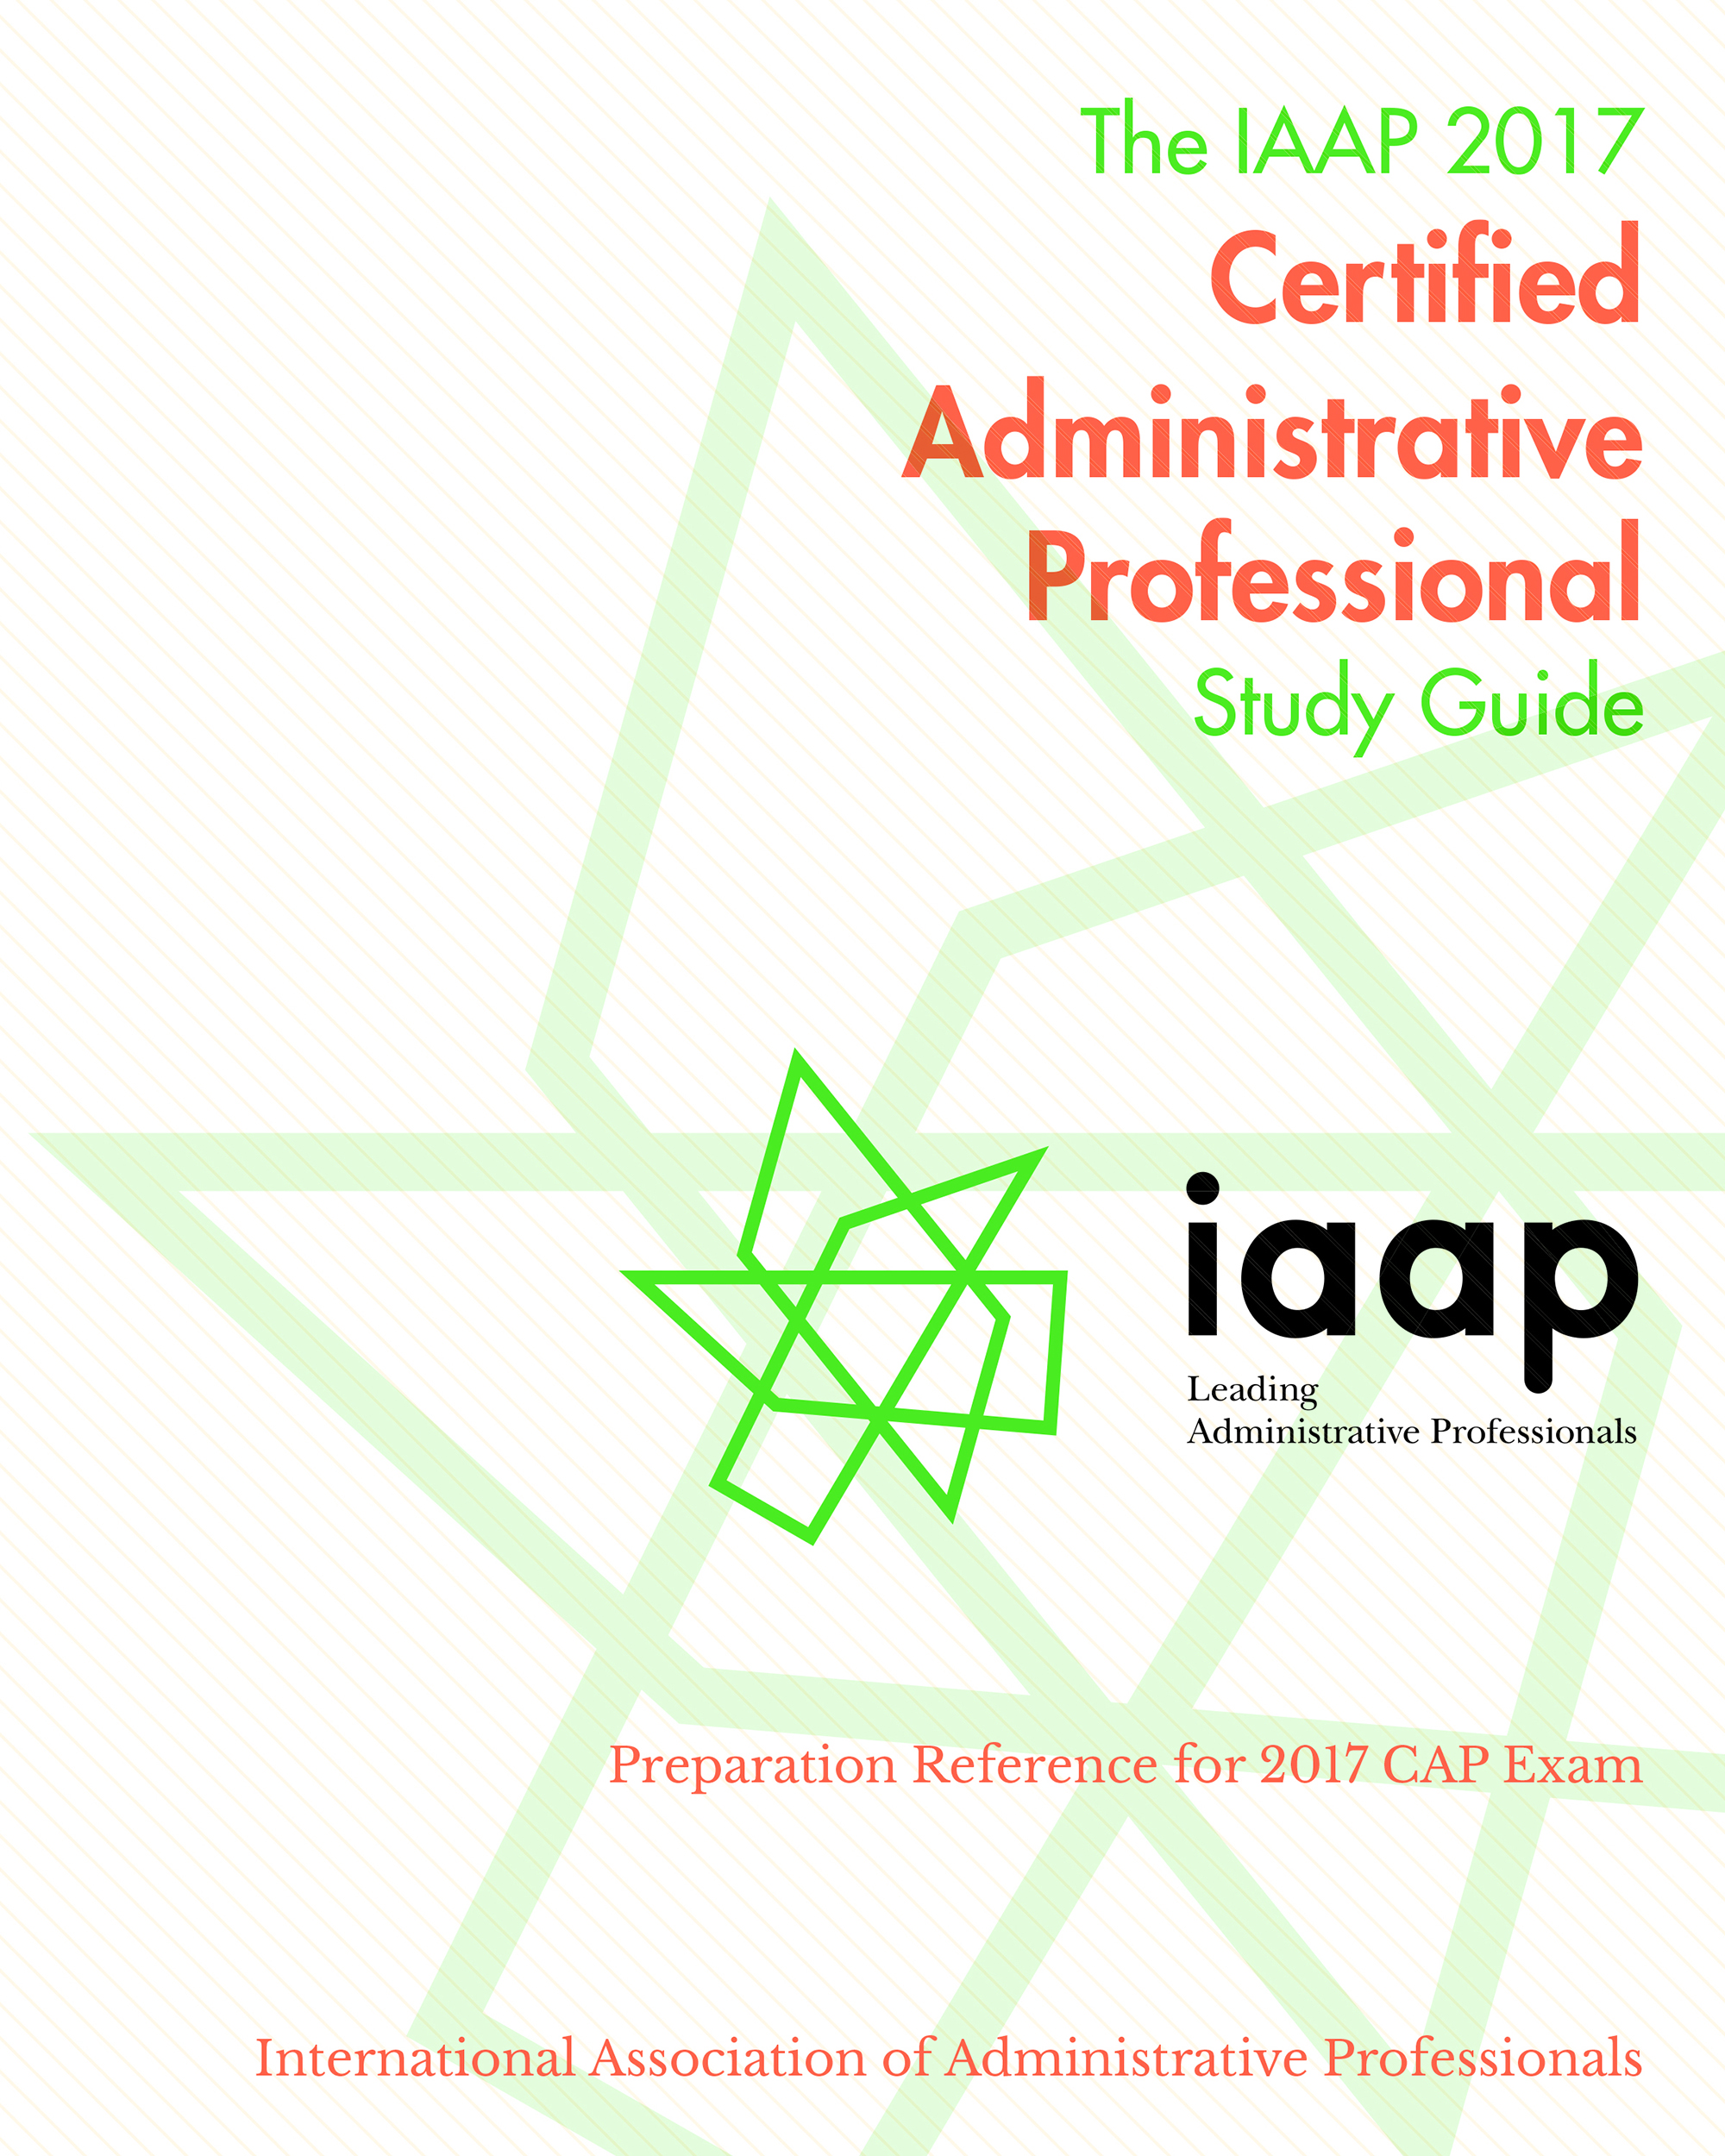 Iaap cap study guide preview iaap the 2017 cap study guide and smartbook is applicable for the spring 2018 cap exam iaap will be publishing a new edition for the fall 2018 cap exam which xflitez Images